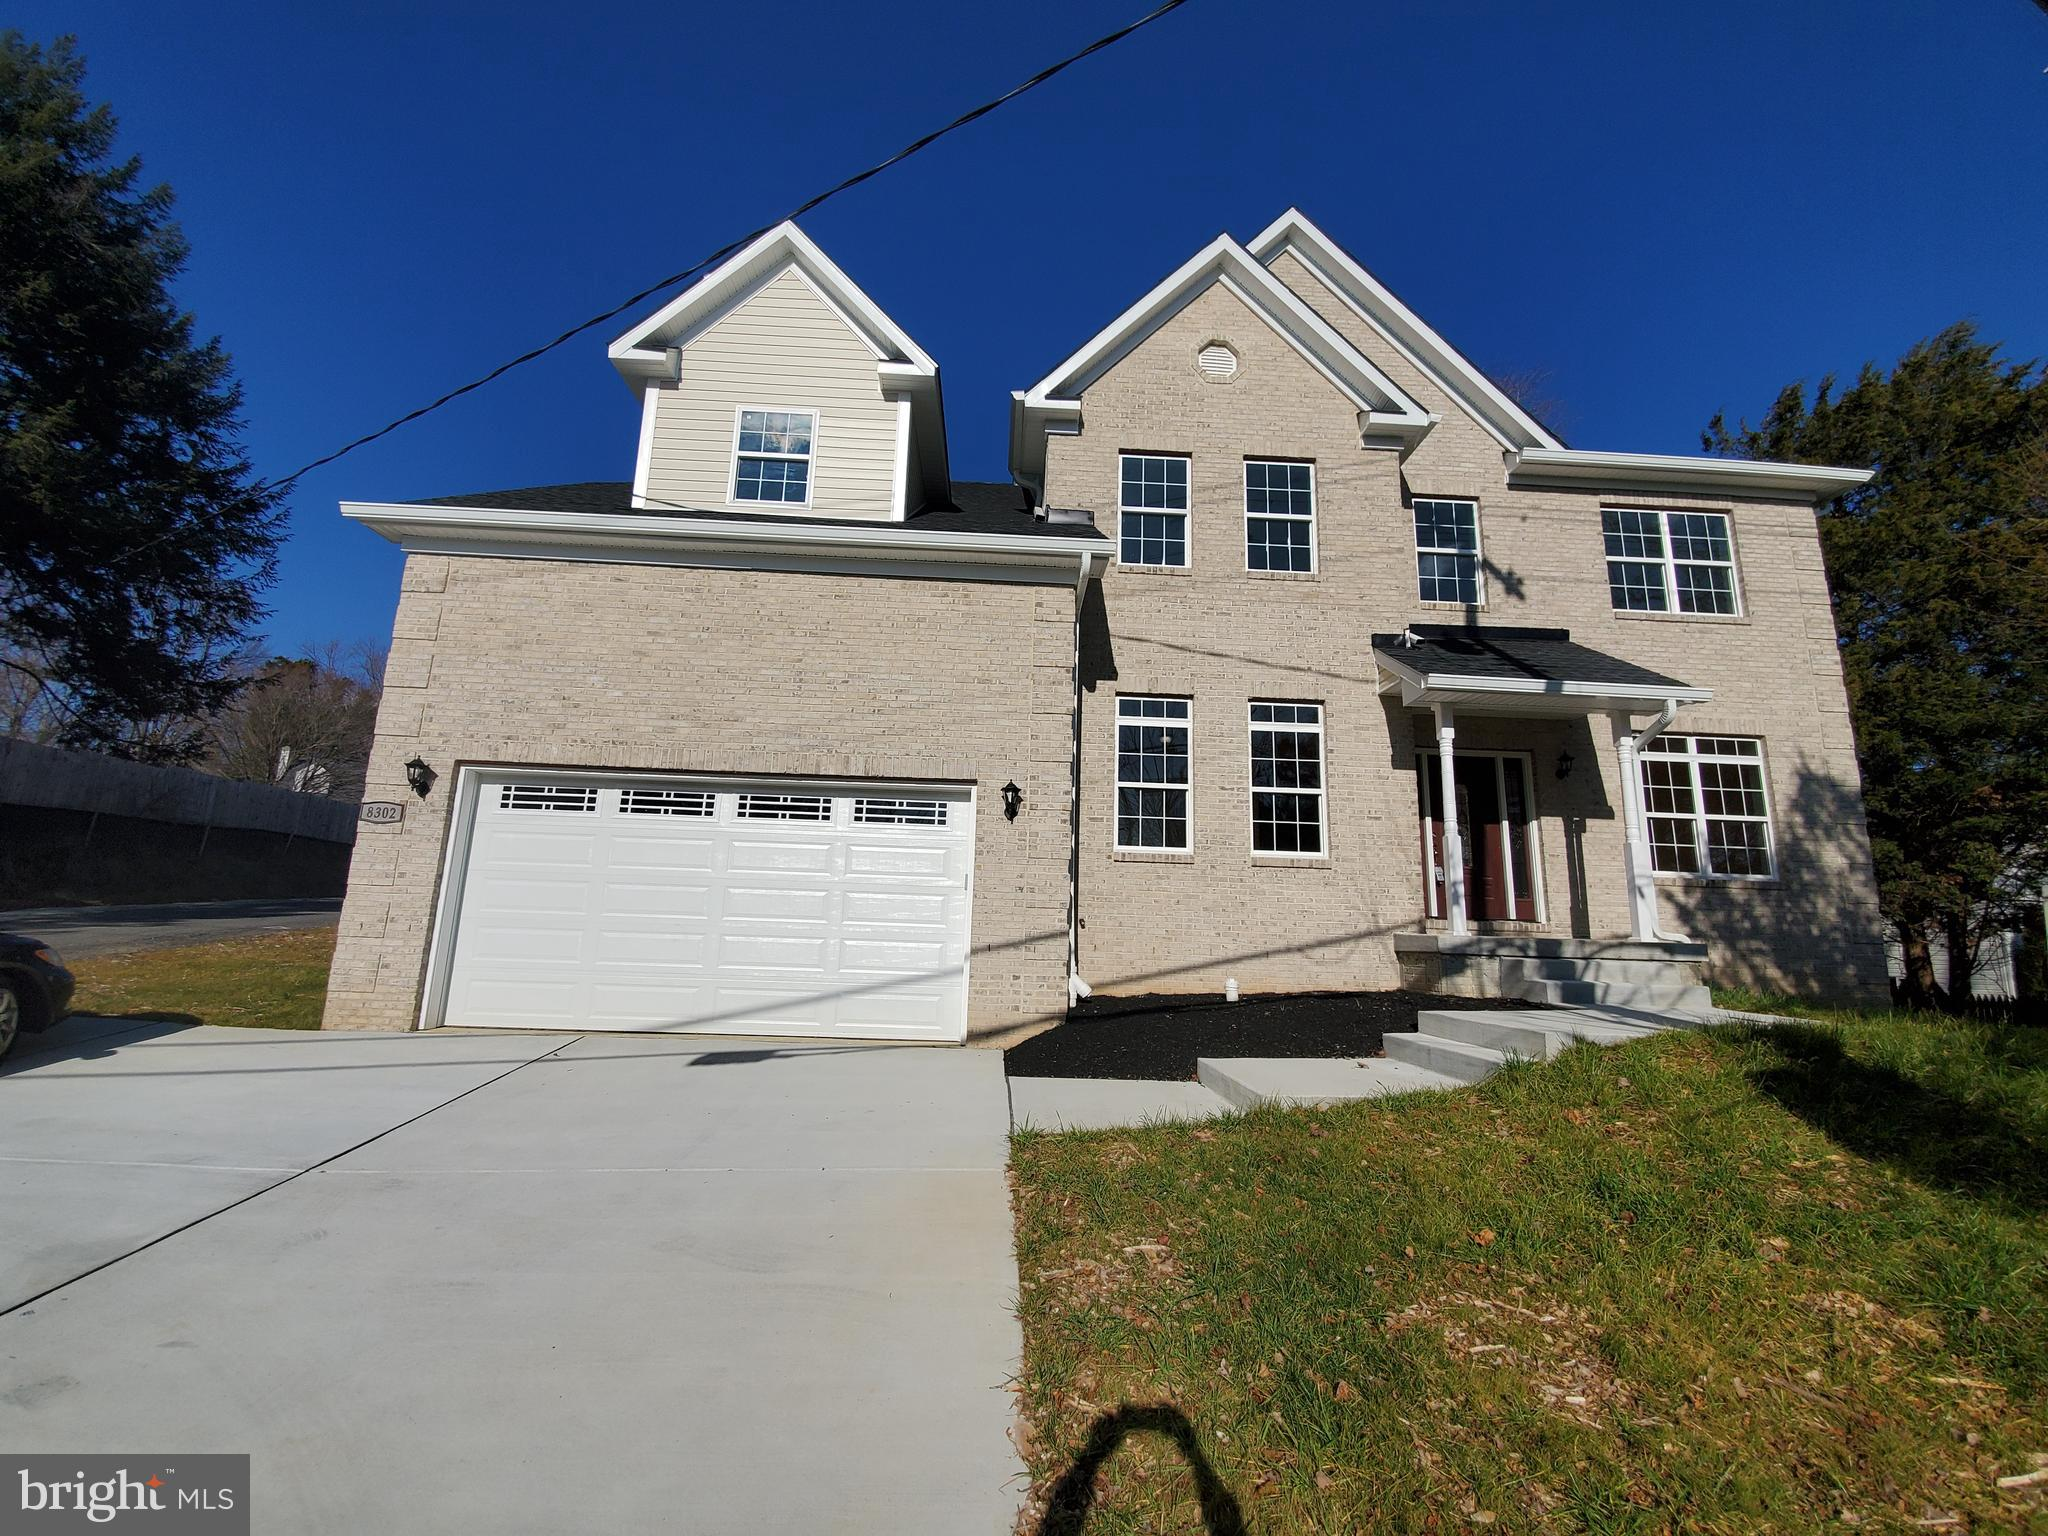 8302 LARK BROWN ROAD, COLUMBIA, MD 21045